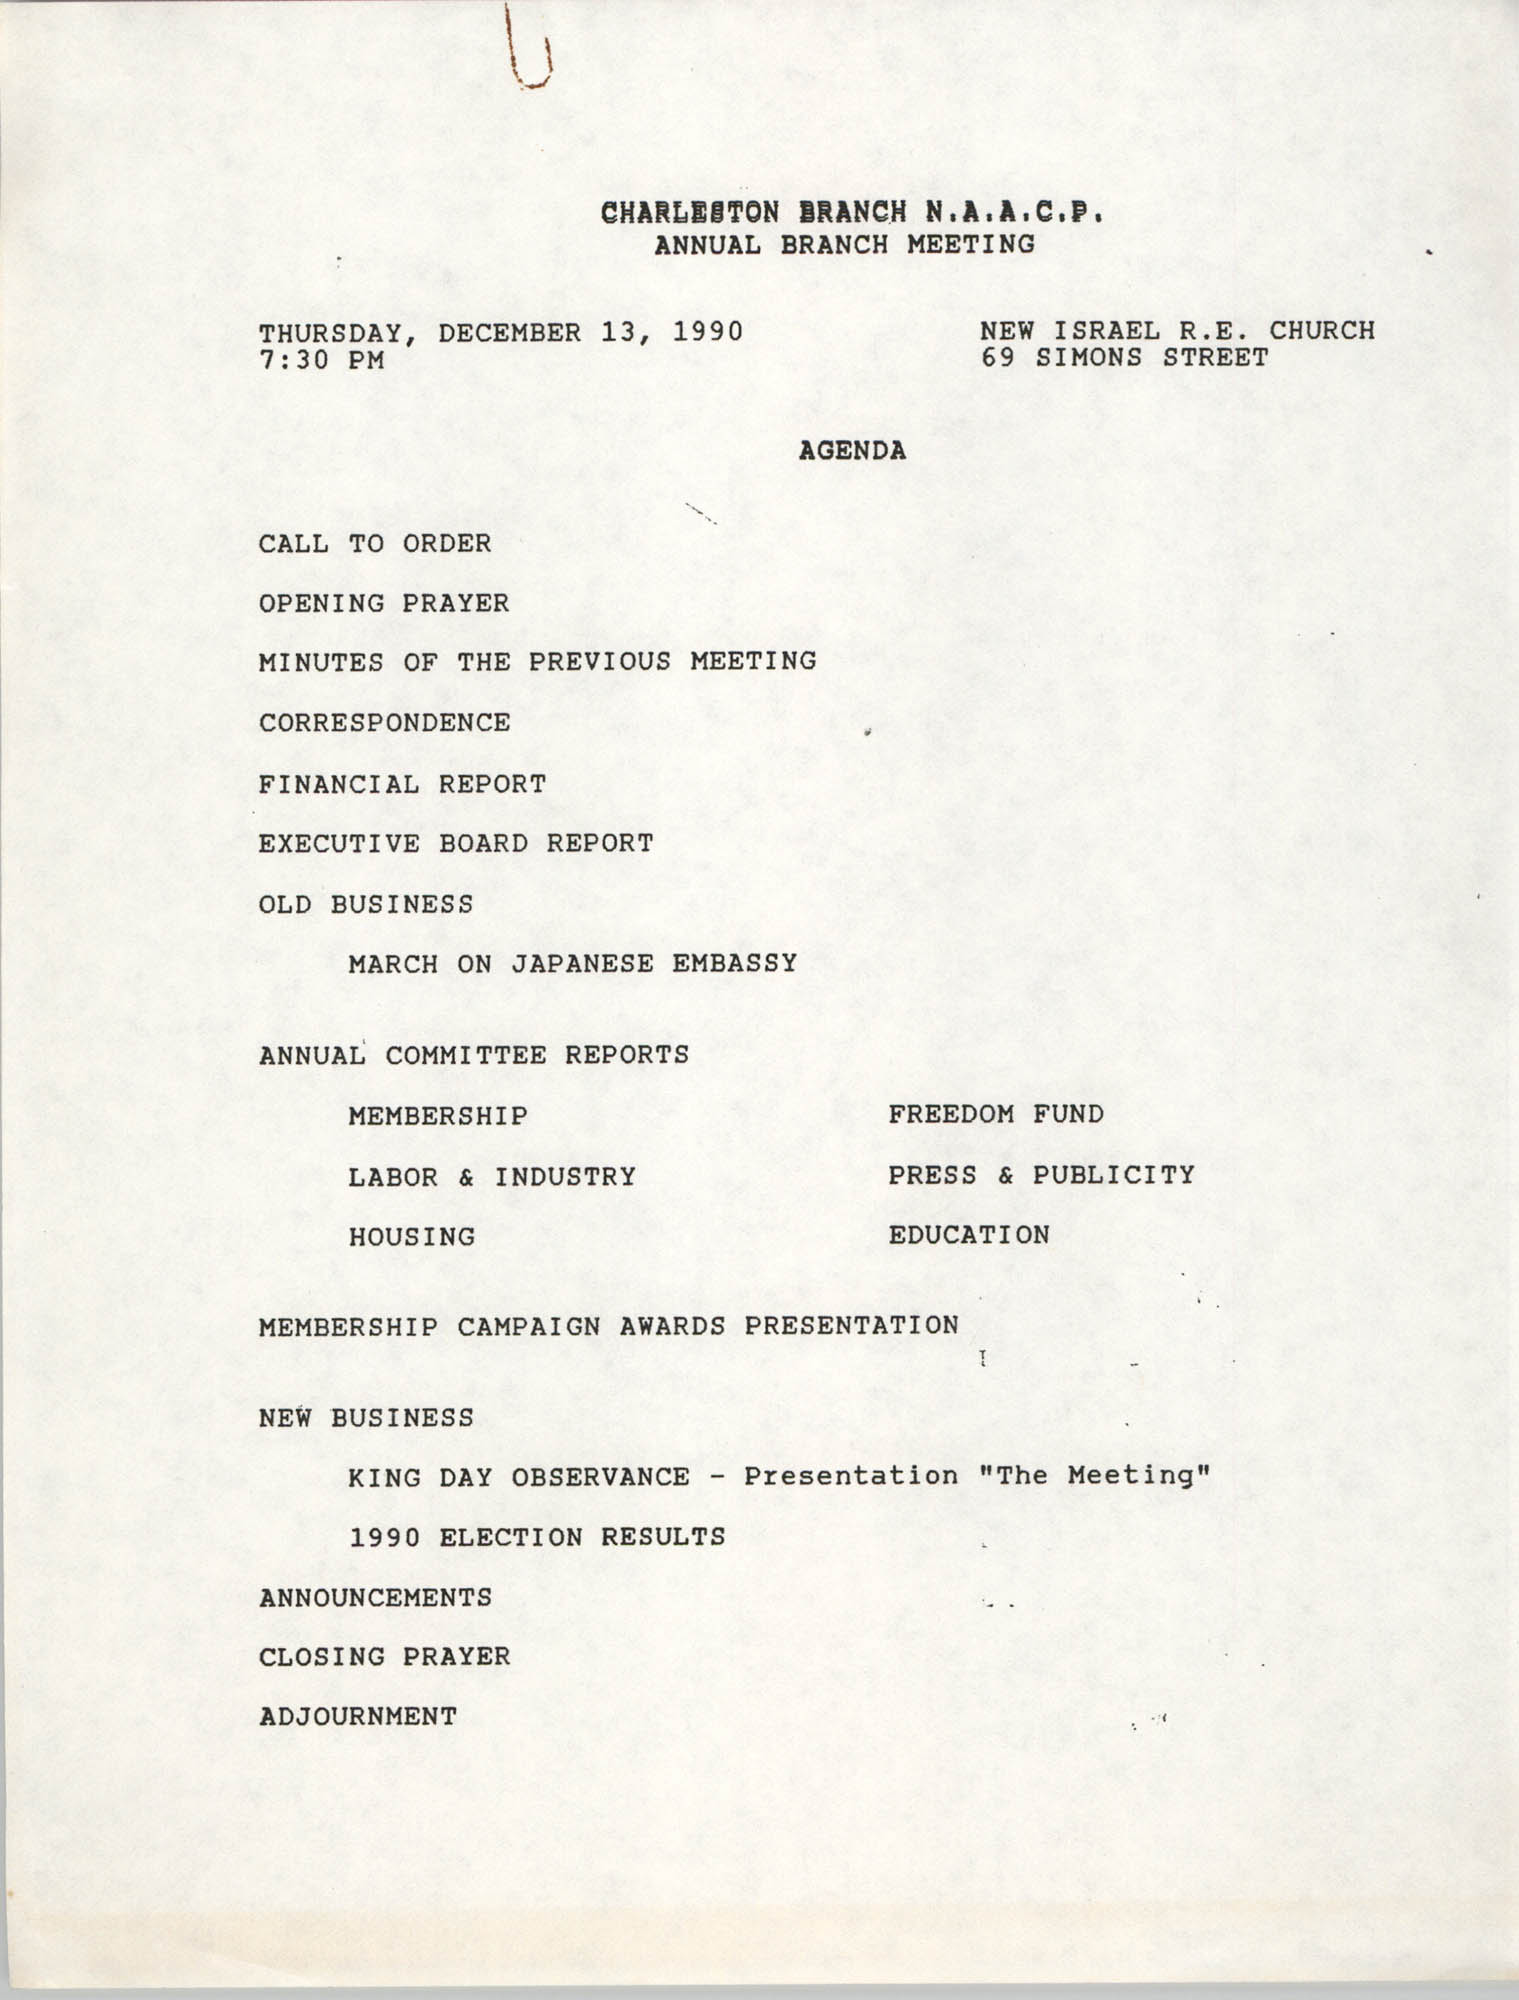 Agenda, Charleston Branch of the NAACP Annual Branch Meeting, December 13, 1990